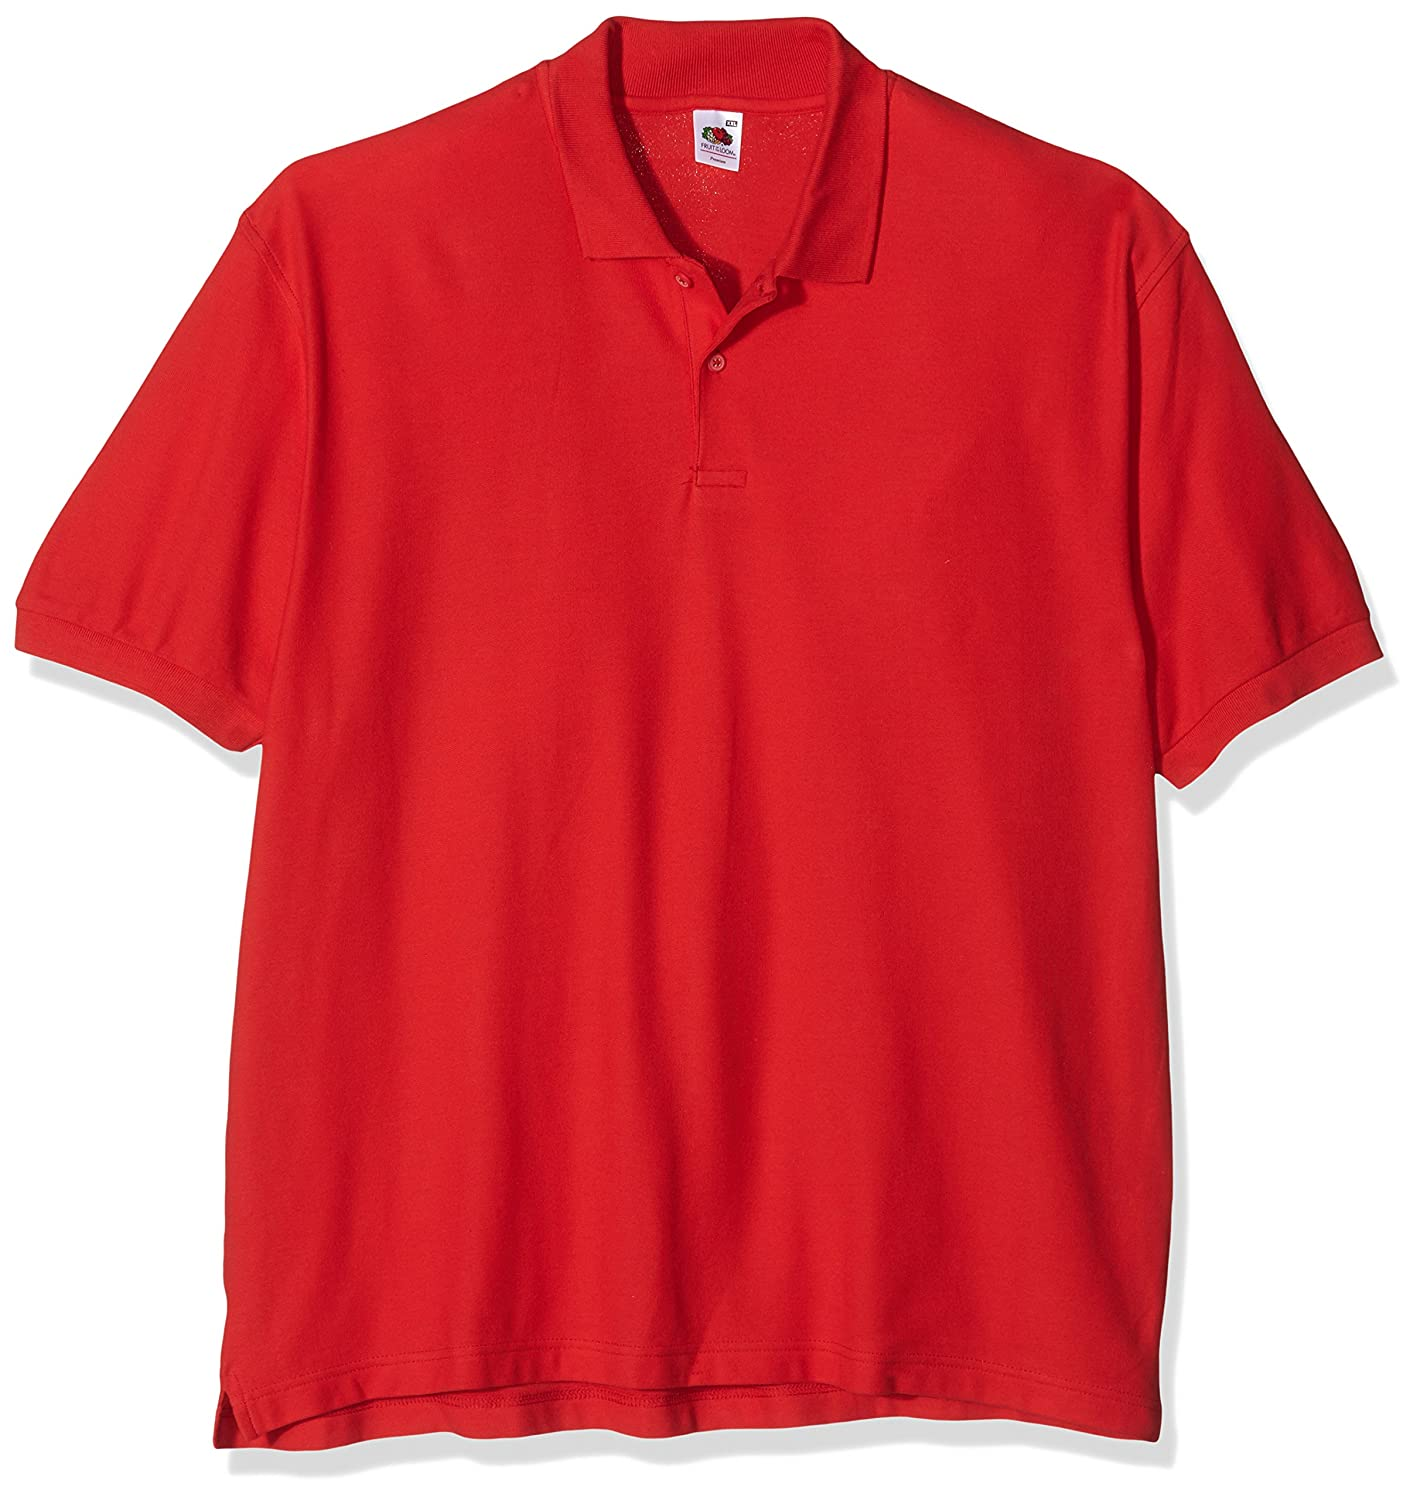 Fruit of the Loom camisa de ss035 m polo para hombre rojo rosso ...